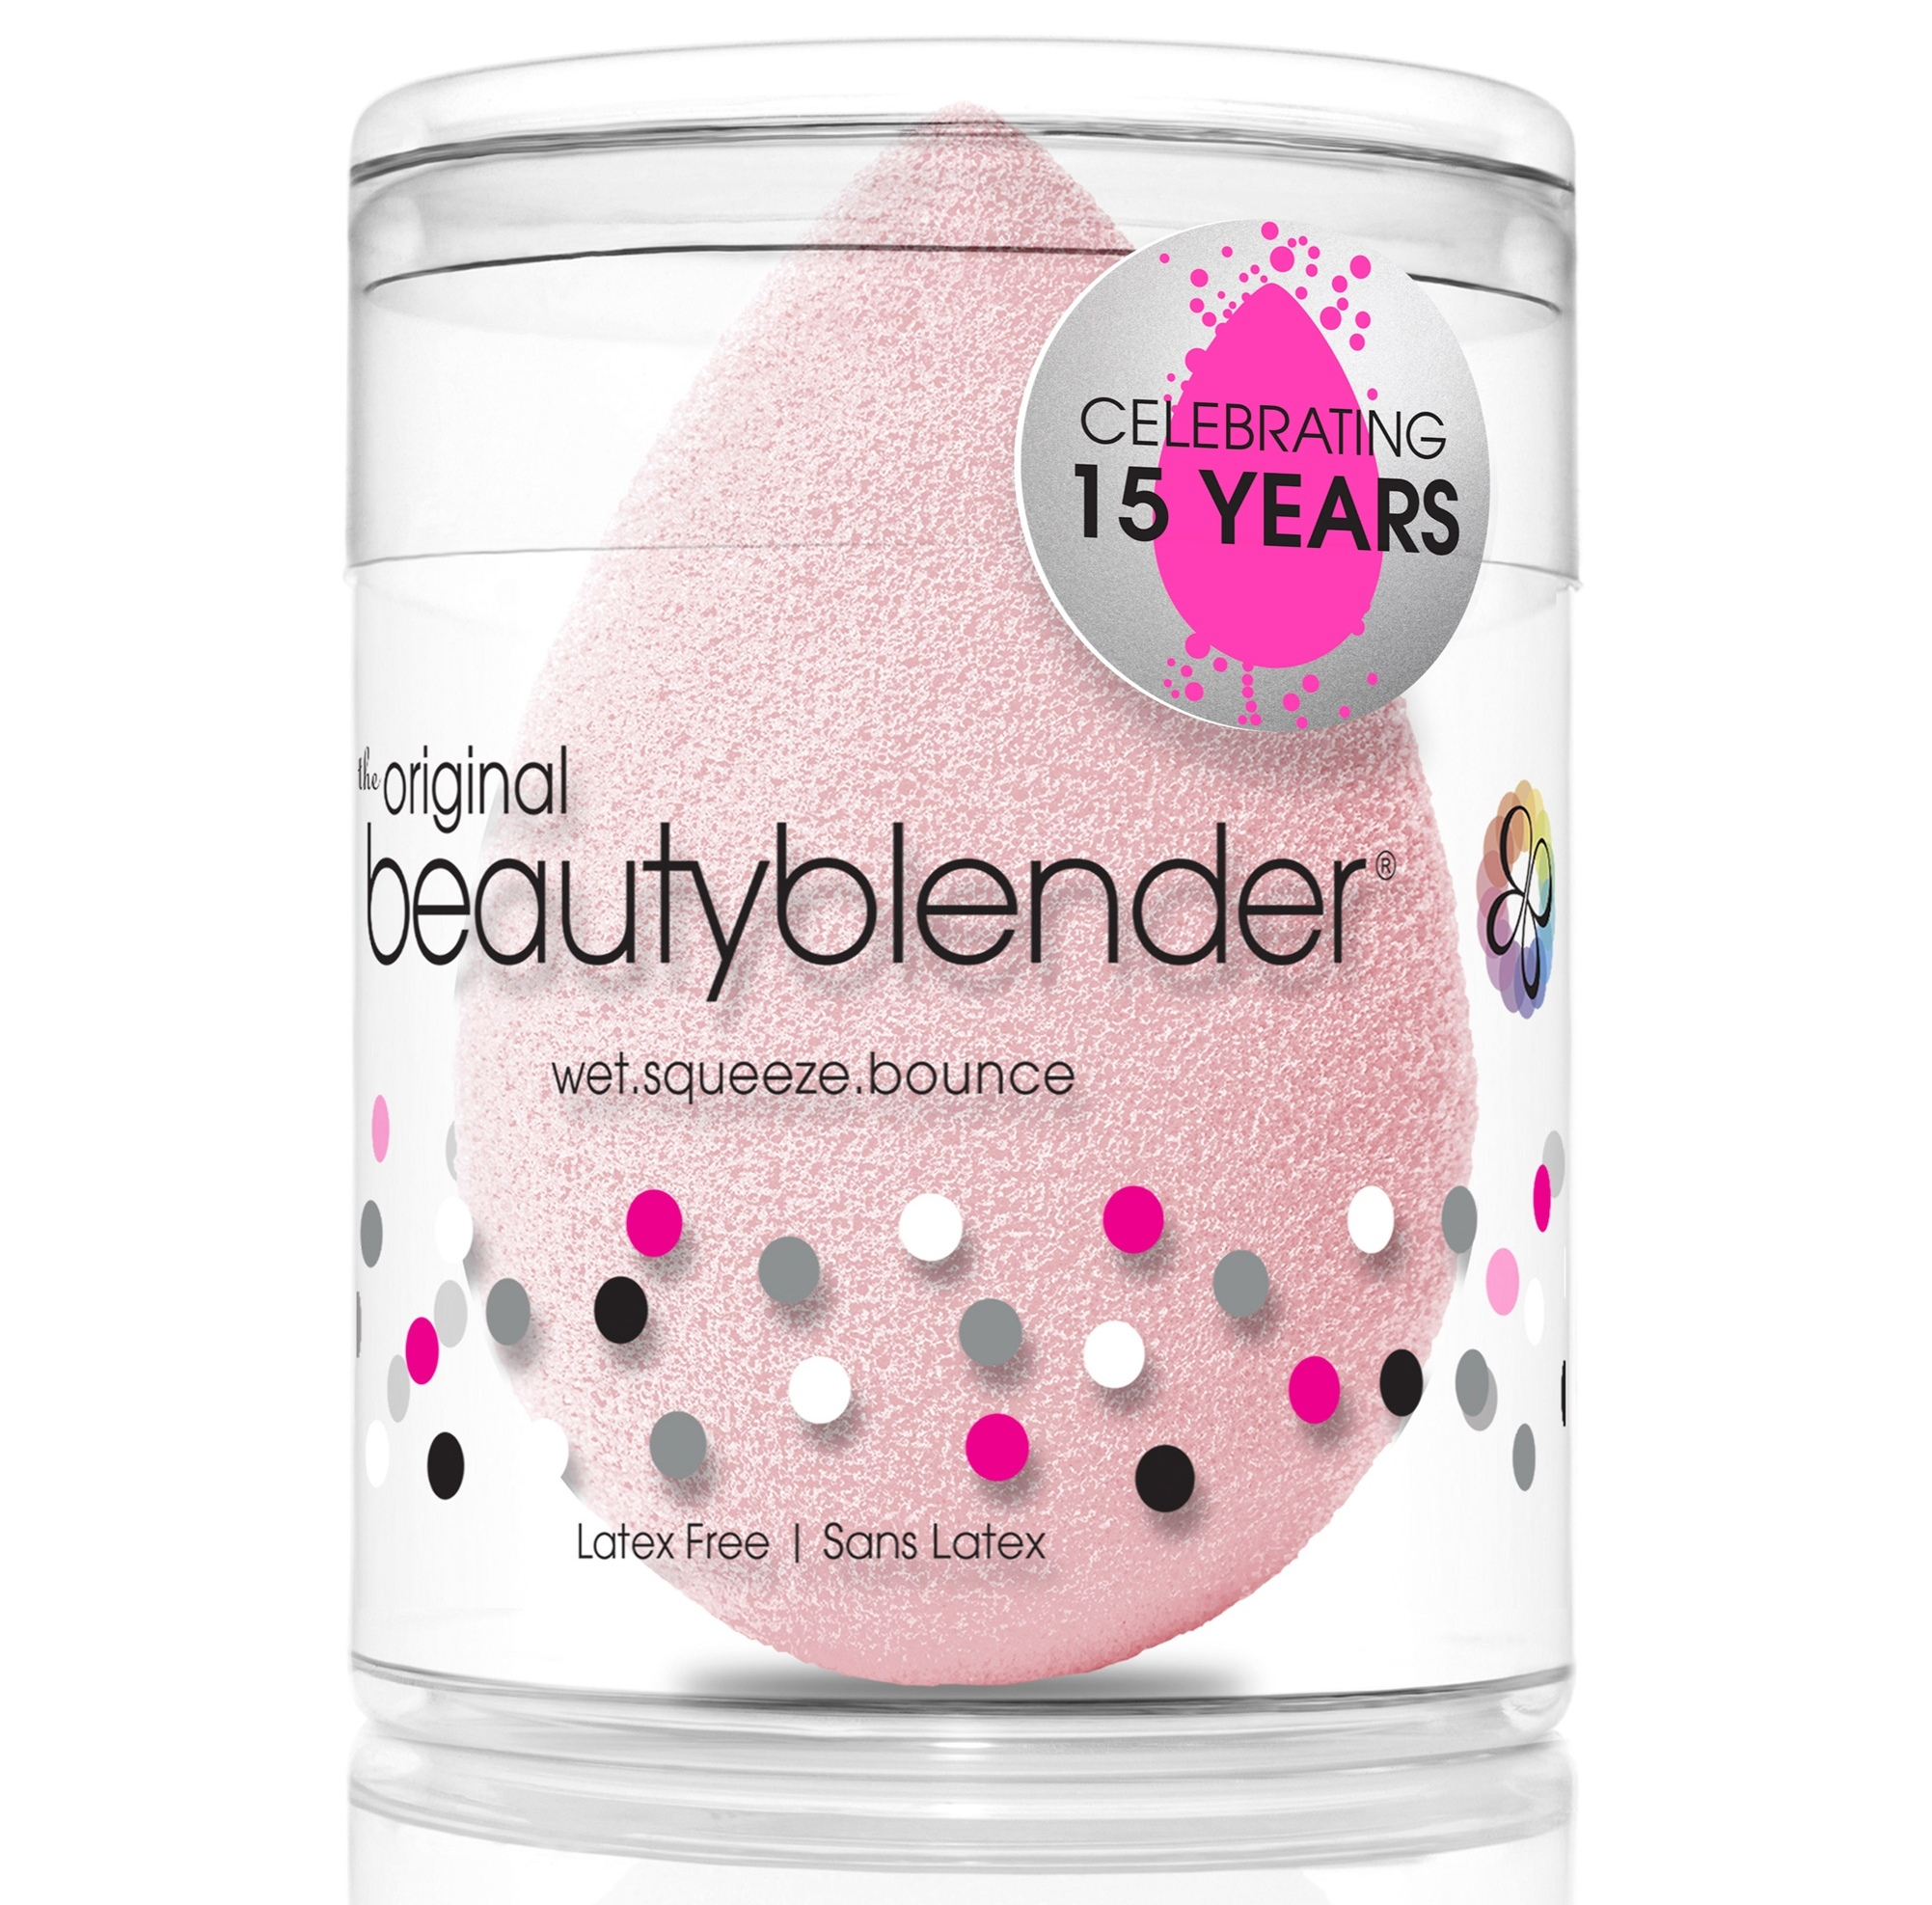 beauty blender sephora papusa ruseasca -